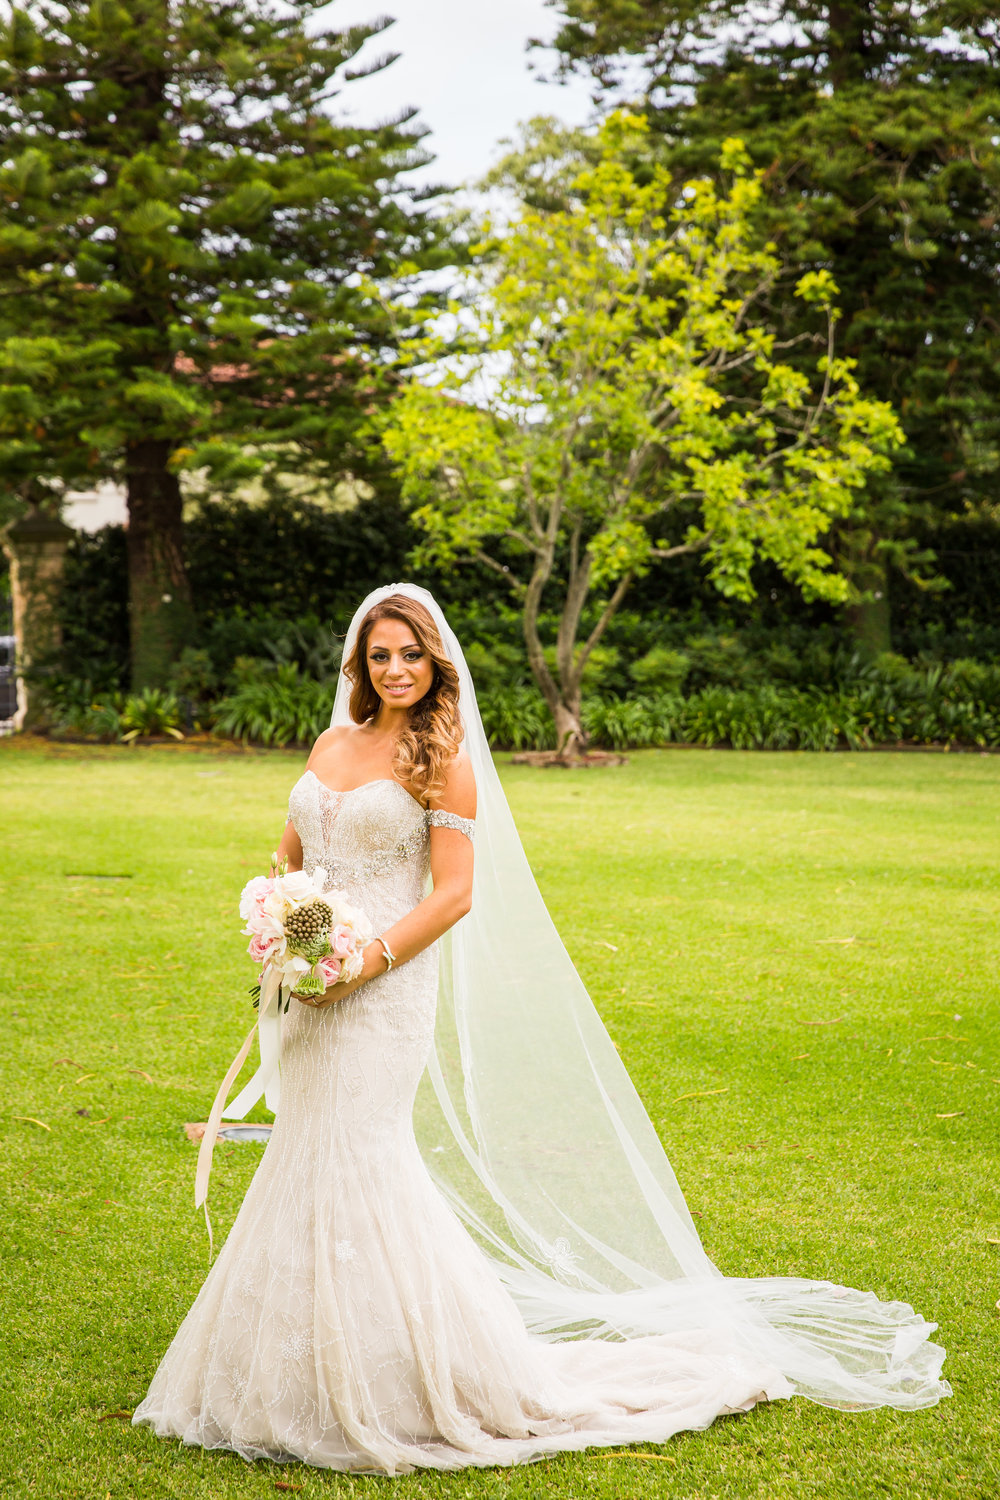 La Sposa Beaded Wedding Dress - A Curzon Hall Wedding - T-One Photography